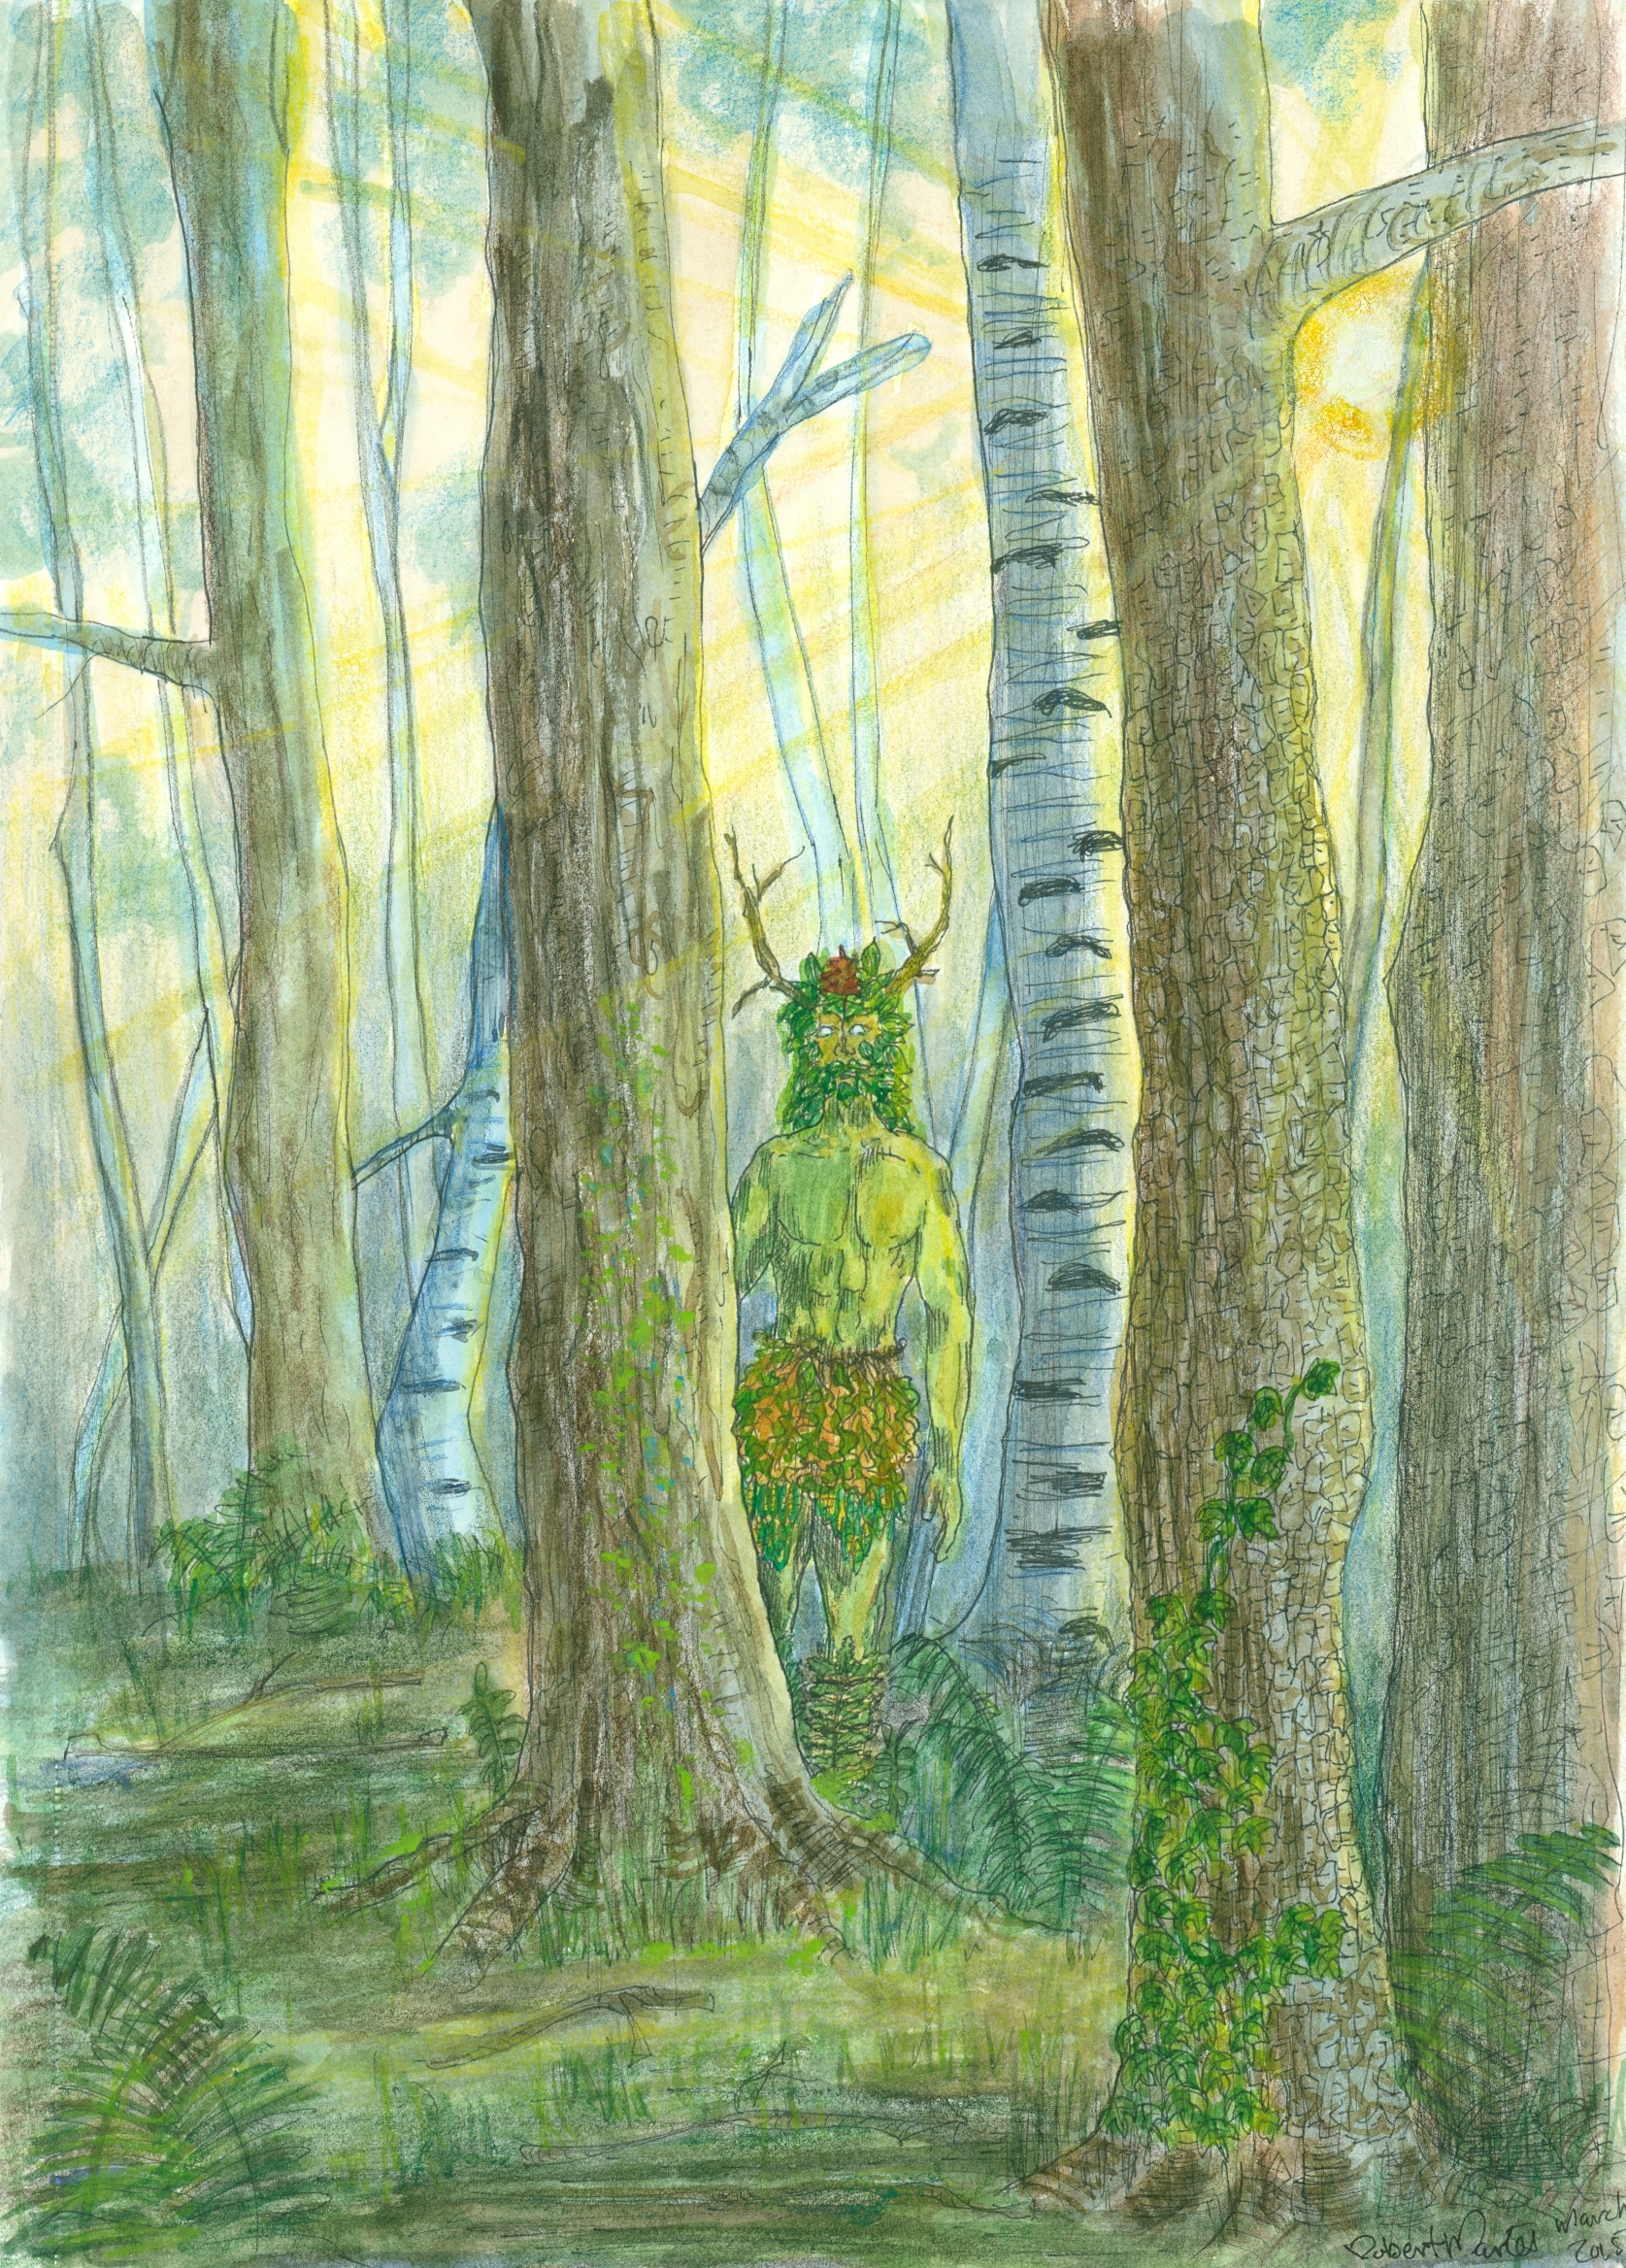 Greenman in his Forest